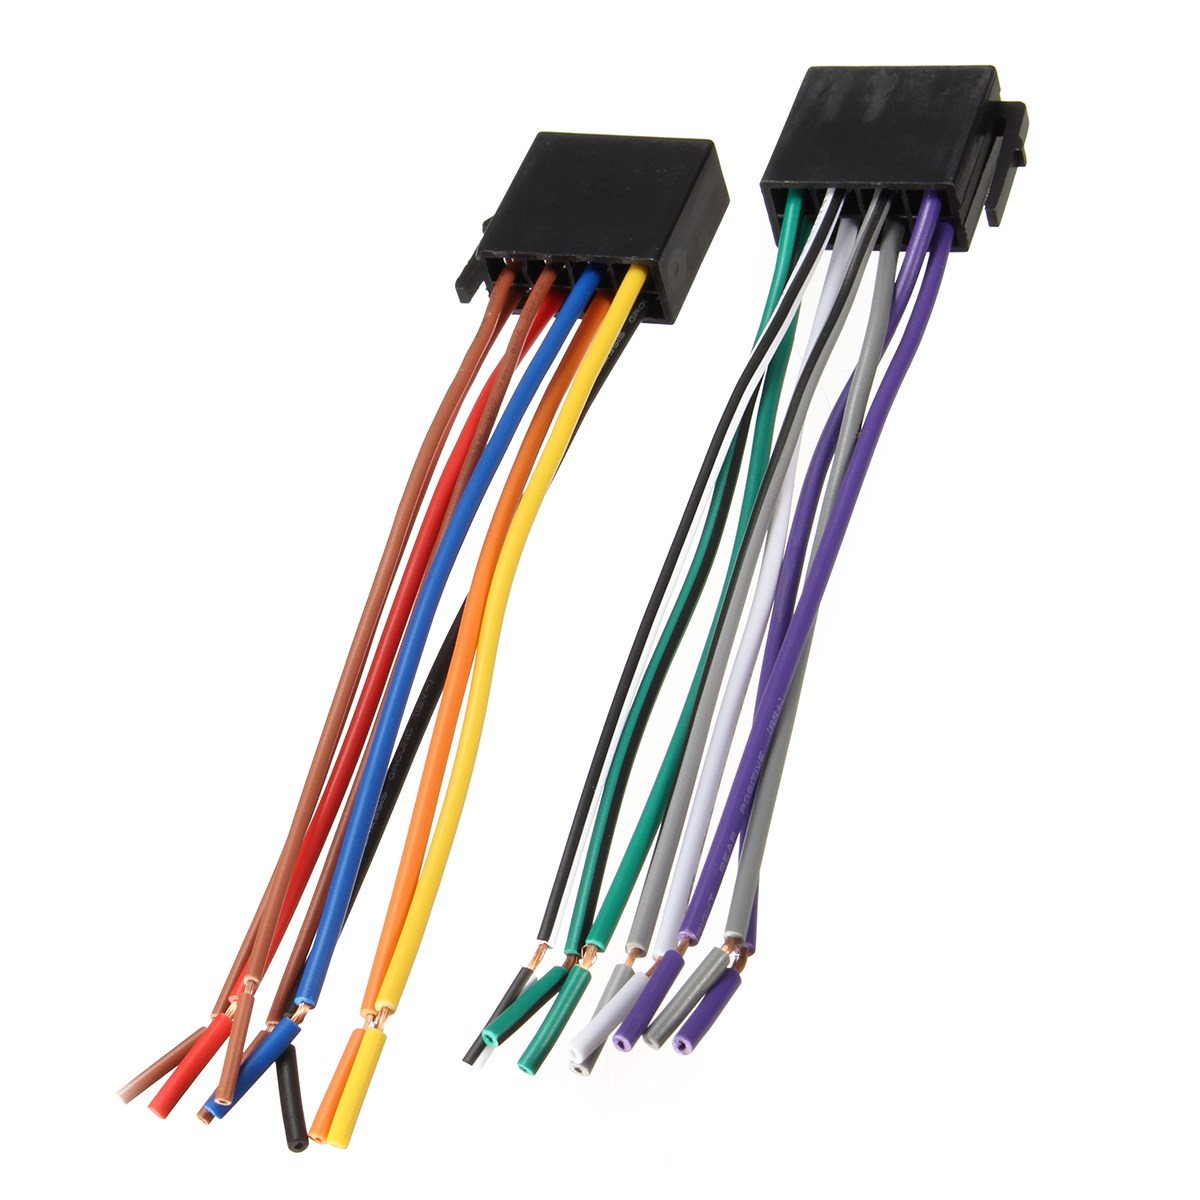 Head Unit Wiring Harness Feeldo 1pc 20pin Universal Aftermarket Car Dvd Stereo Wire Adapter Connector Cable Radio Plug For Auto System